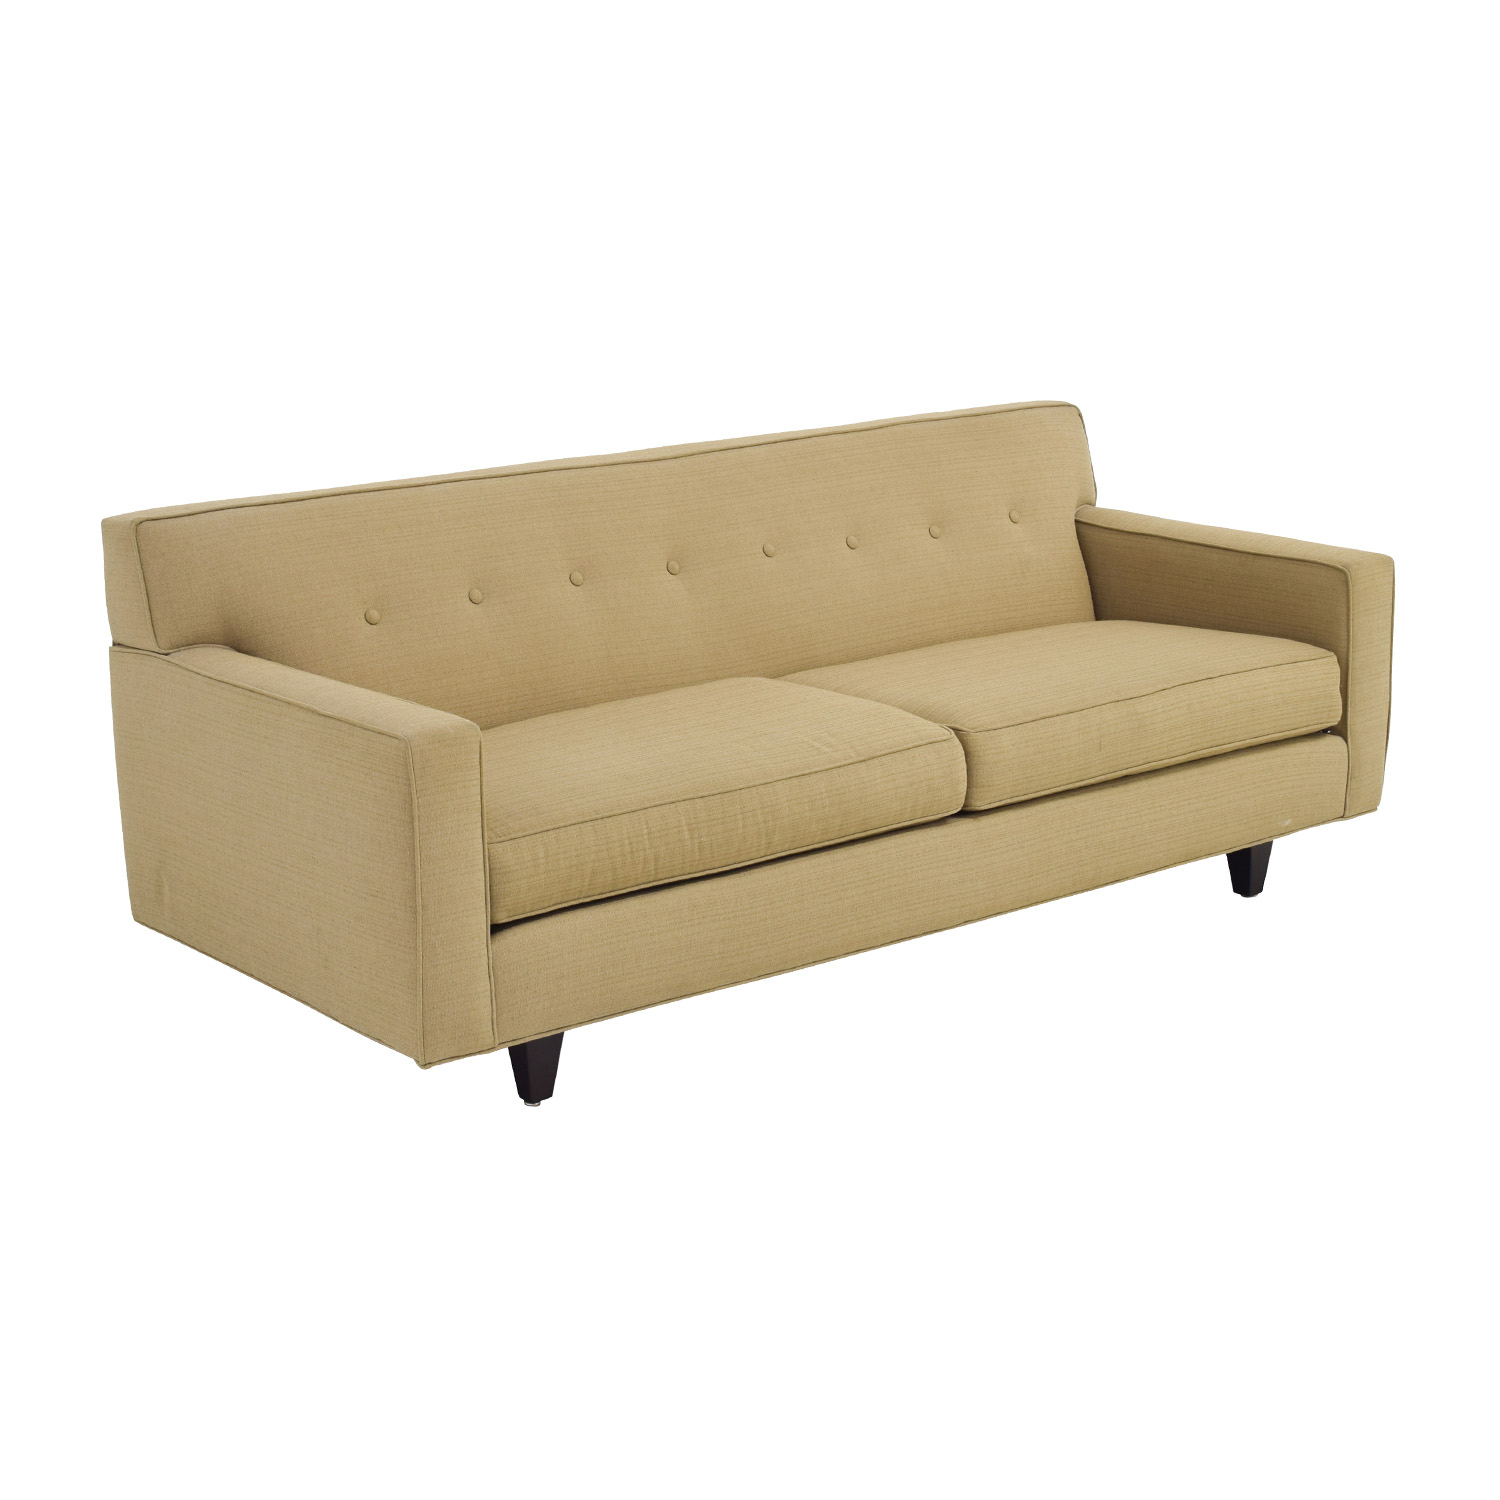 oatmeal sofa where to buy pillows 49 off rowe furniture contemporary